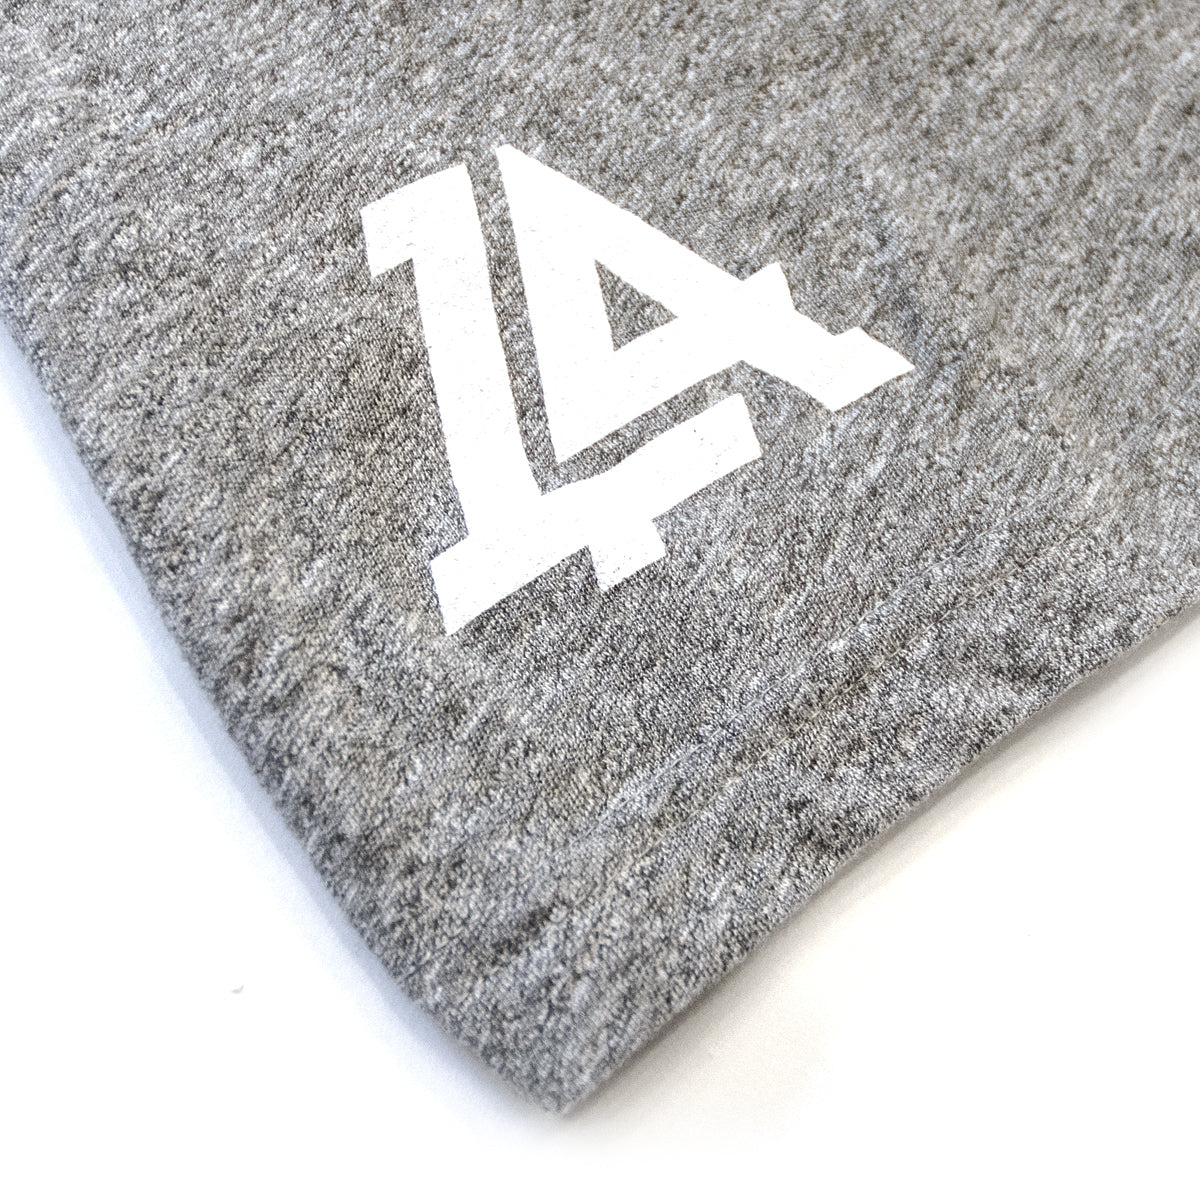 Lost Art Canada - white on grey vintage gridlock tee back logo view